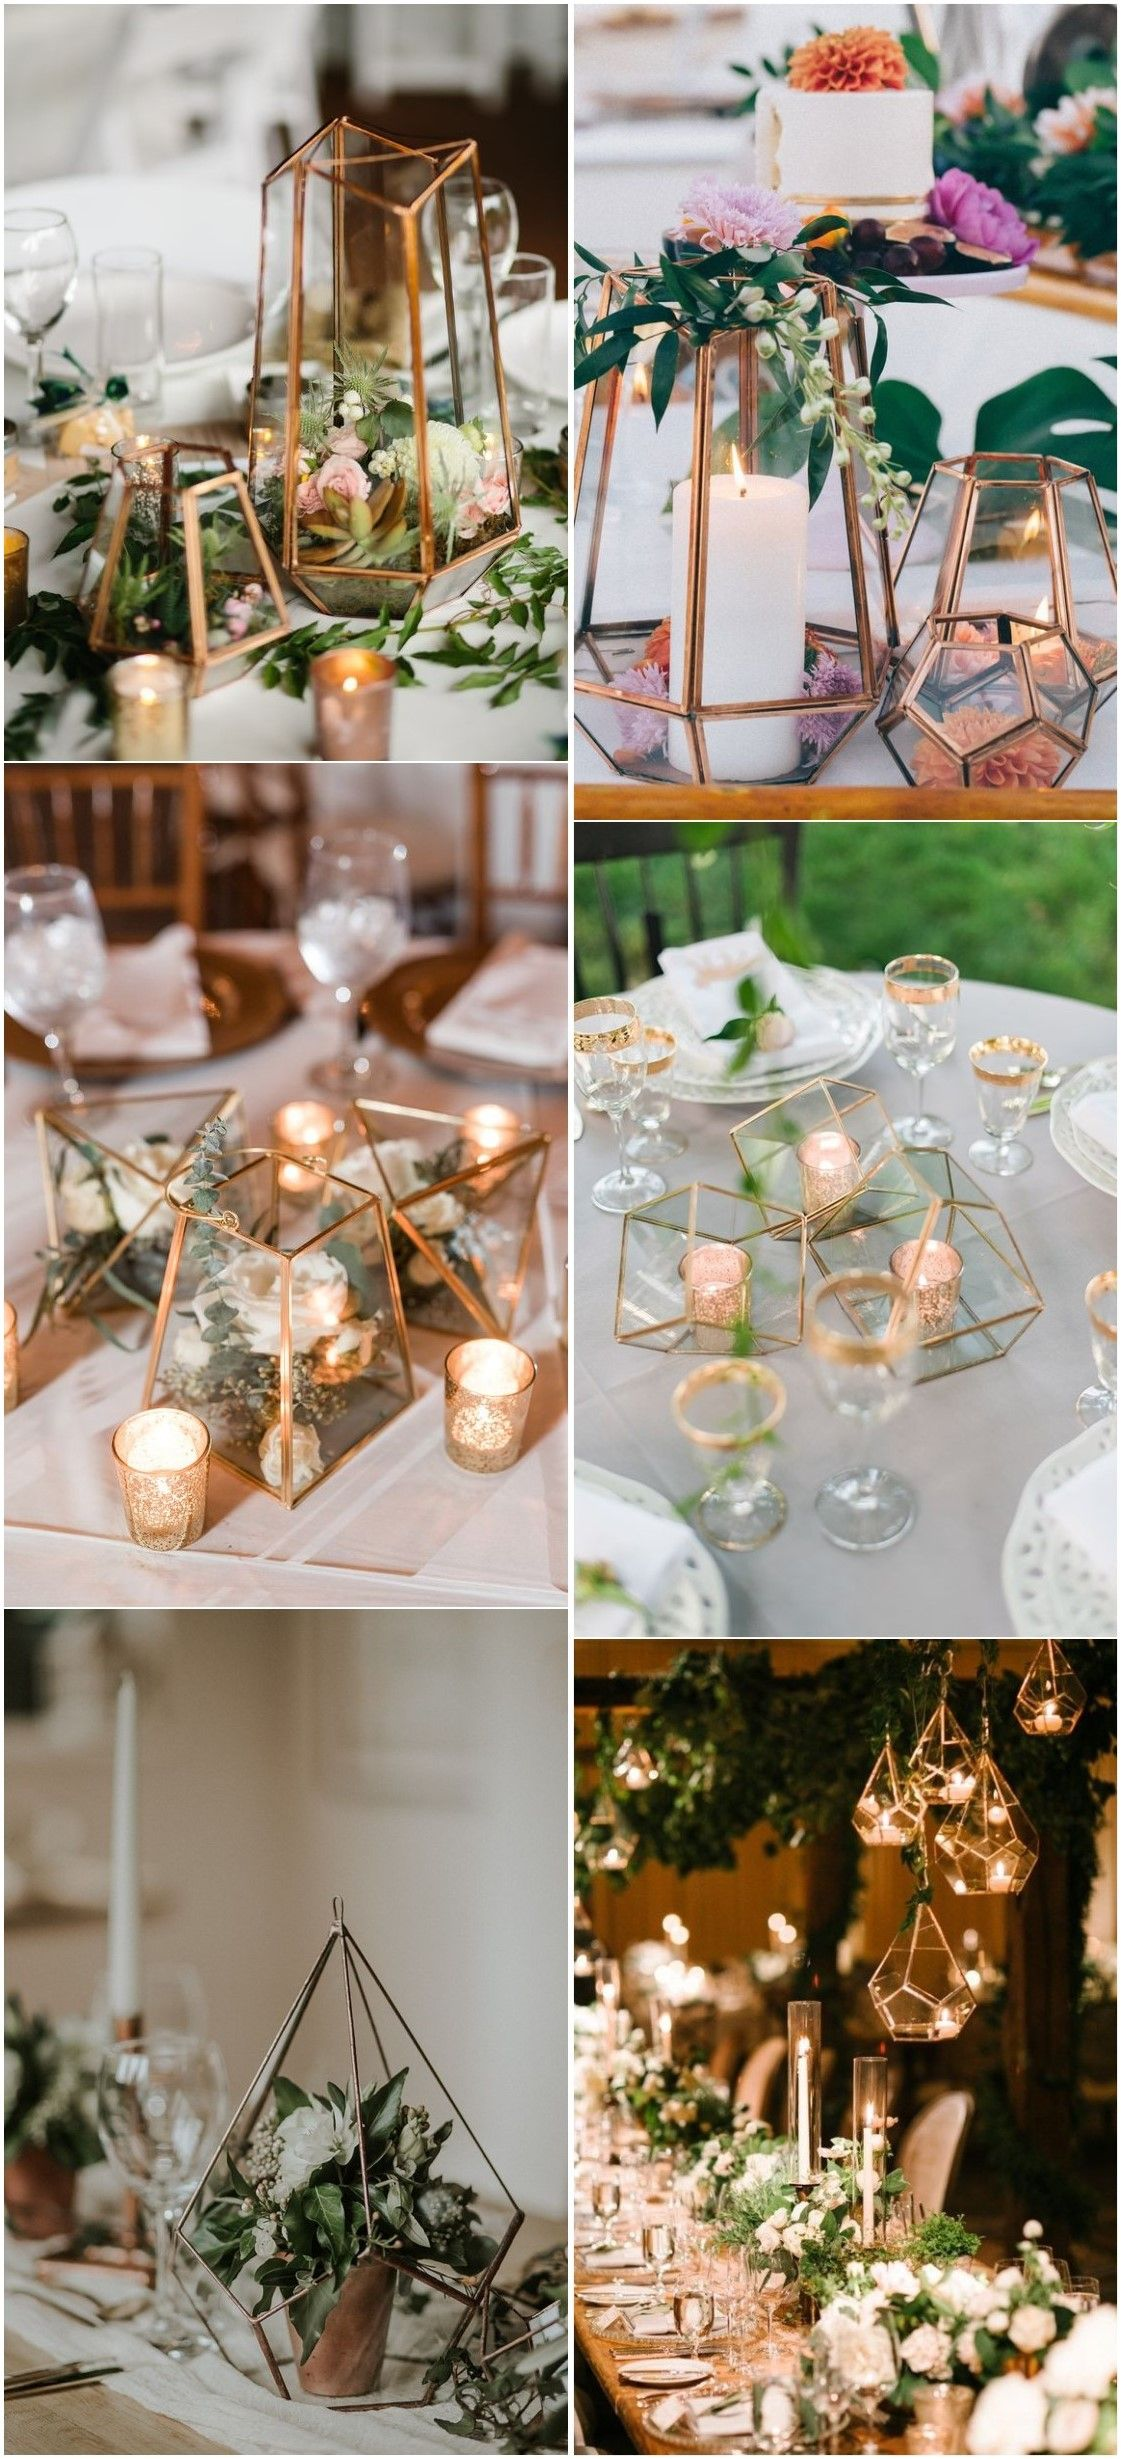 wedding table decor ideas, wedding lanterns inspiration, chic and fabulous wedding flowers #wedding ideas